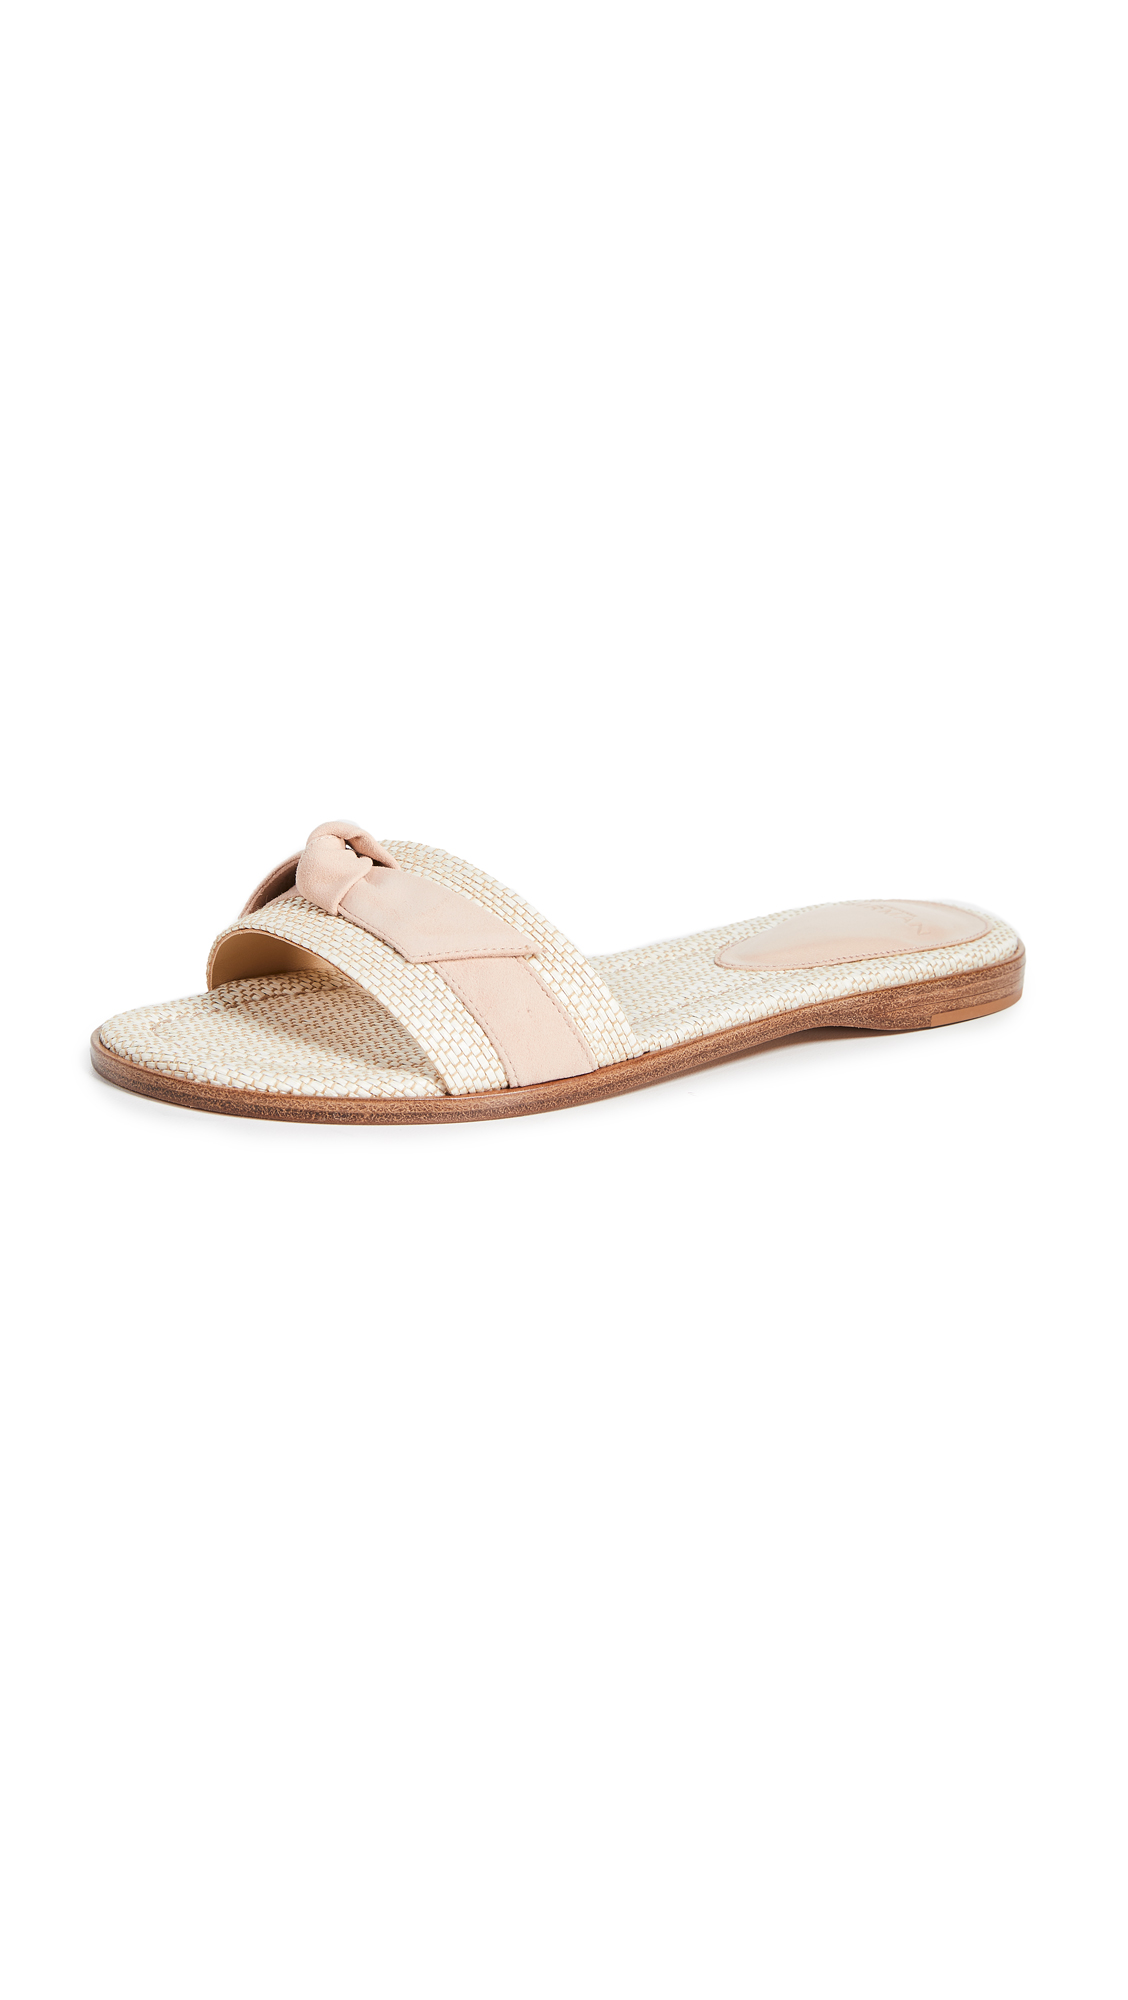 Alexandre Birman Clarita Paglia Slides - Natural/Light Sand